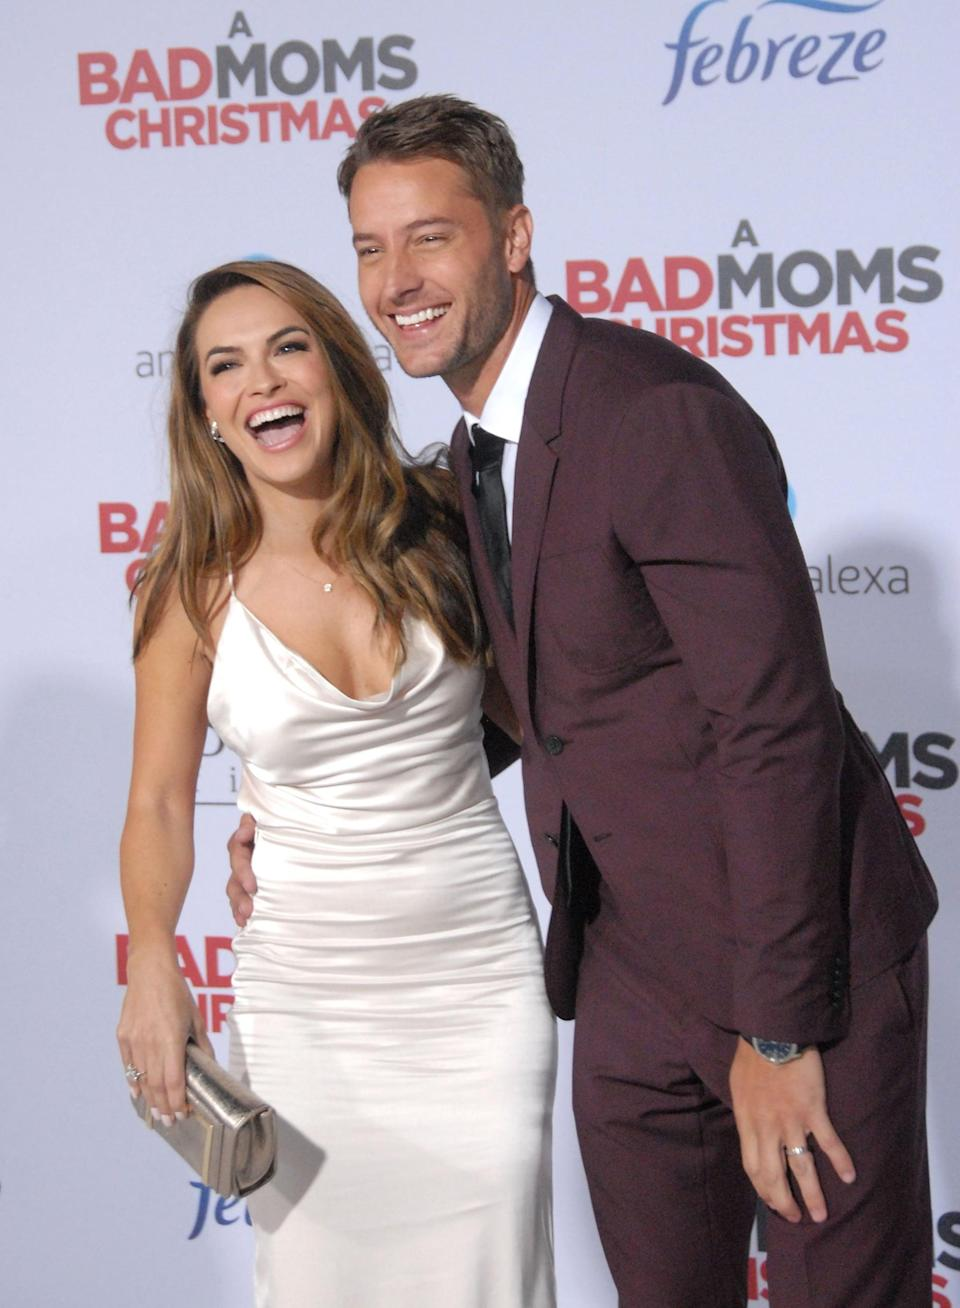 """<p>Two days later, <a href=""""https://www.popsugar.com/celebrity/Justin-Hartley-His-Wife-Bad-Moms-Christmas-Premiere-44200807"""" class=""""link rapid-noclick-resp"""" rel=""""nofollow noopener"""" target=""""_blank"""" data-ylk=""""slk:the pair made their red carpet debut"""">the pair made their red carpet debut</a> as a married couple at the LA premiere of <strong>A Bad Moms Christmas</strong>.</p>"""